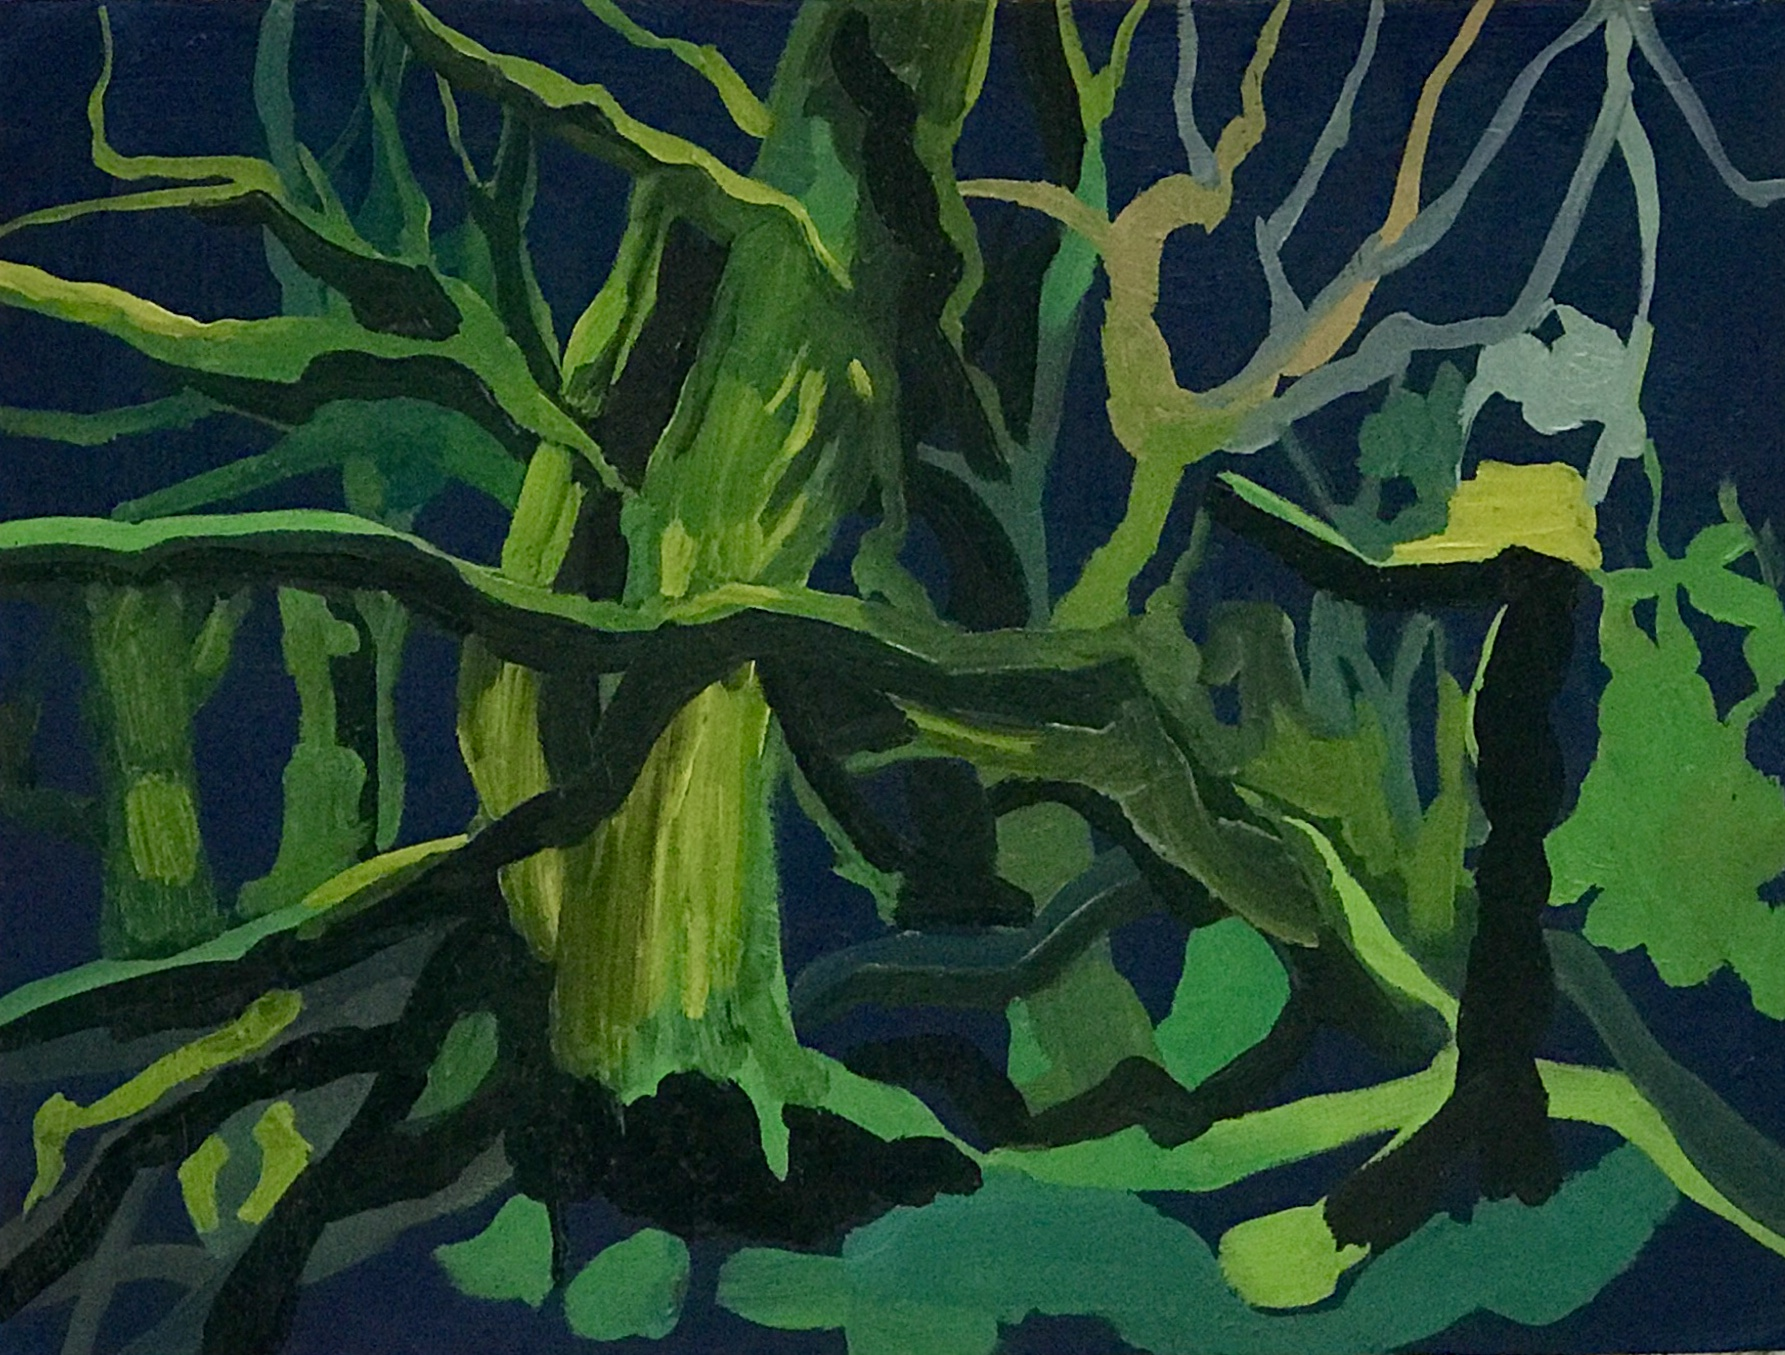 The forest at midnight